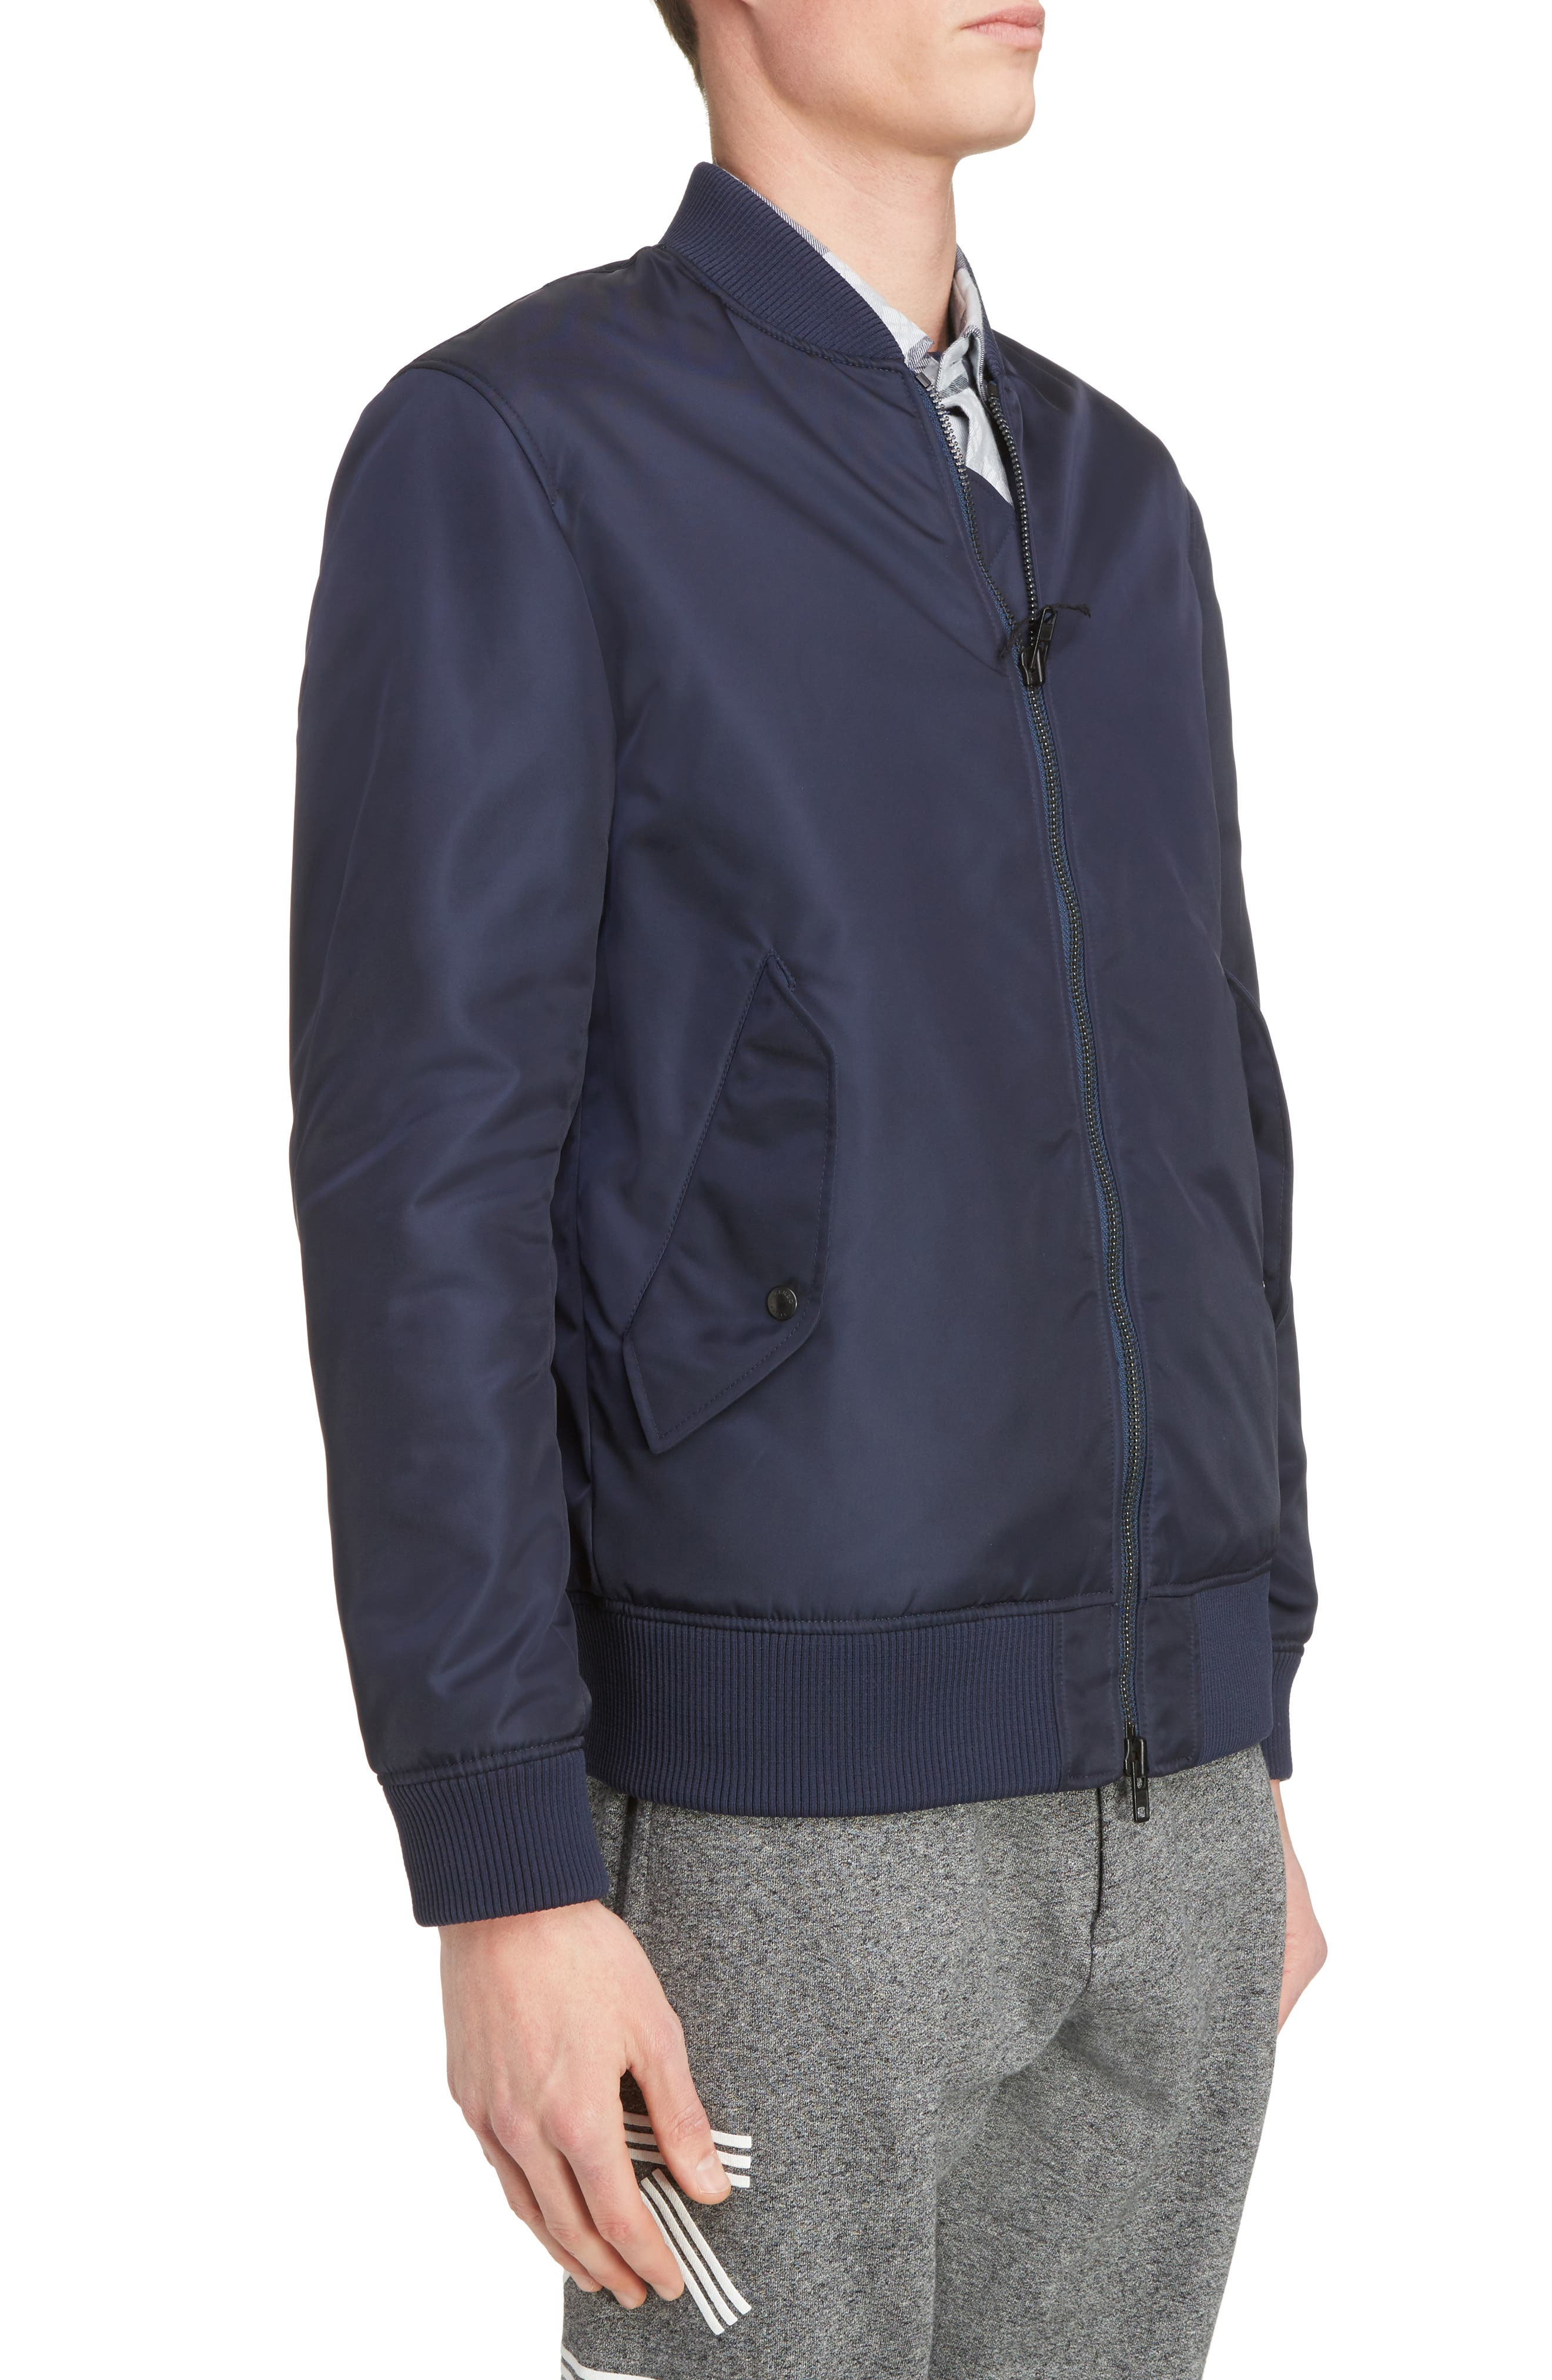 Embroidered Bomber Jacket,                             Alternate thumbnail 4, color,                             402